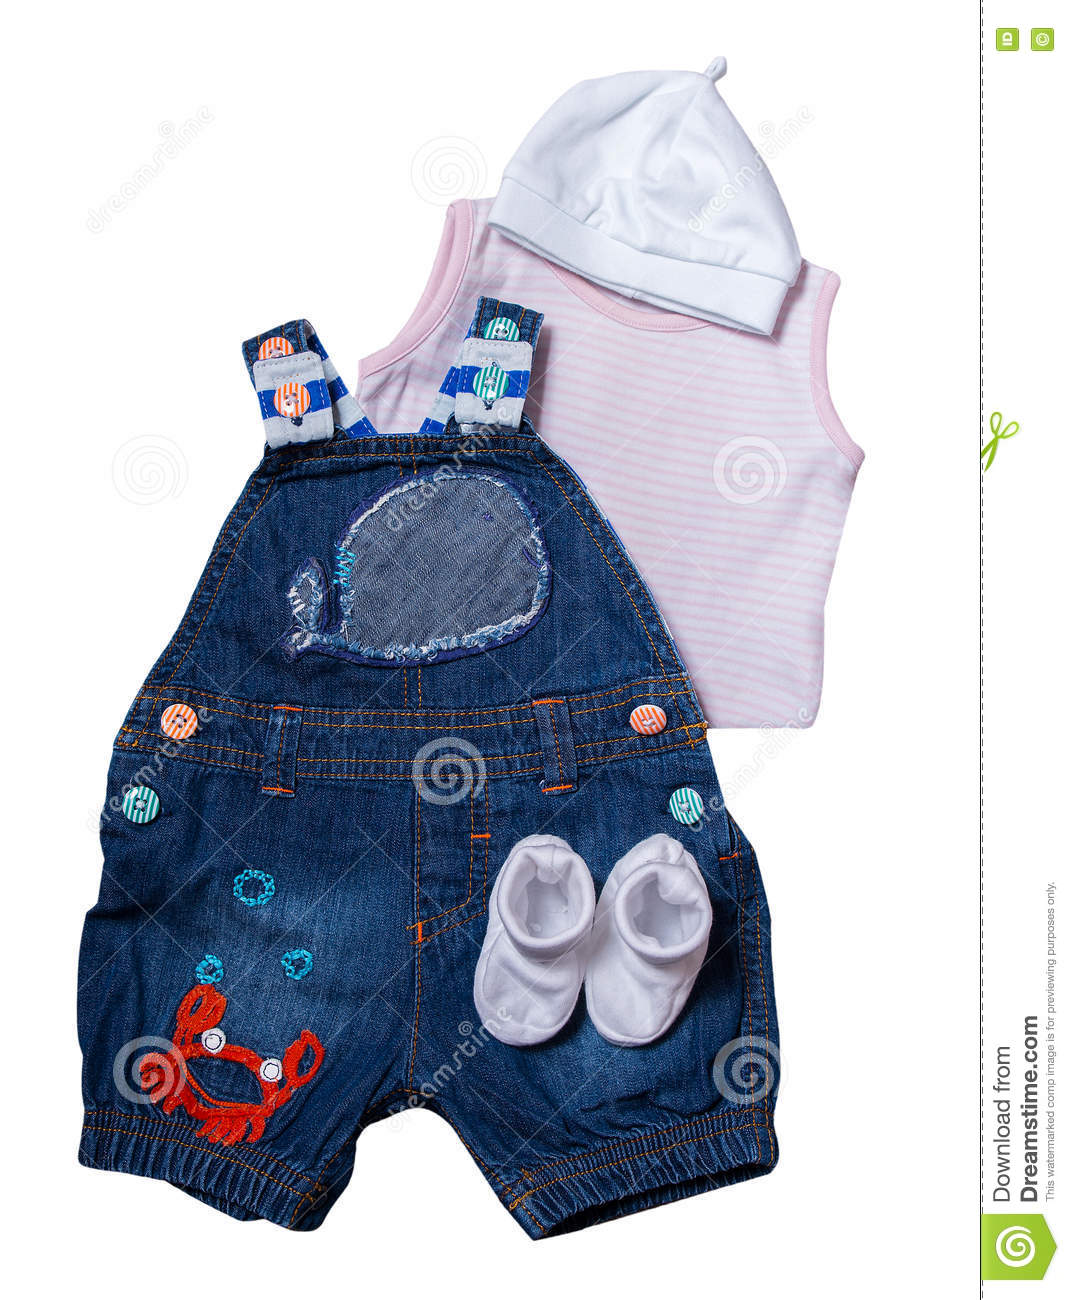 Set Newborn Baby Clothes Marine Style Stock Image